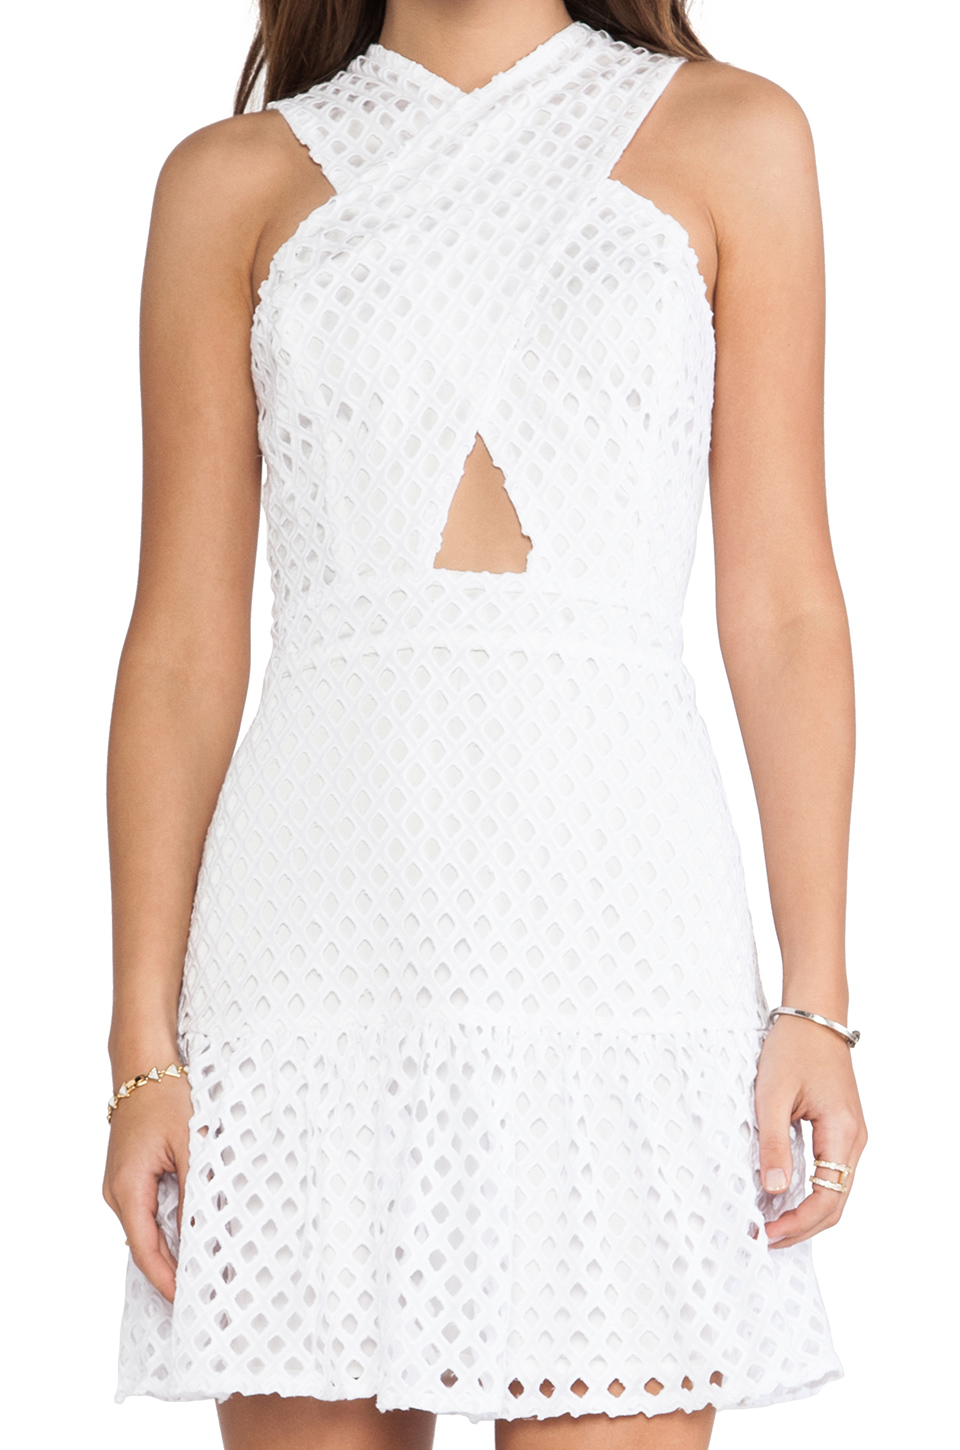 Line & Dot Crossover Neck Eyelet Dress in White from REVOLVEclothing.com